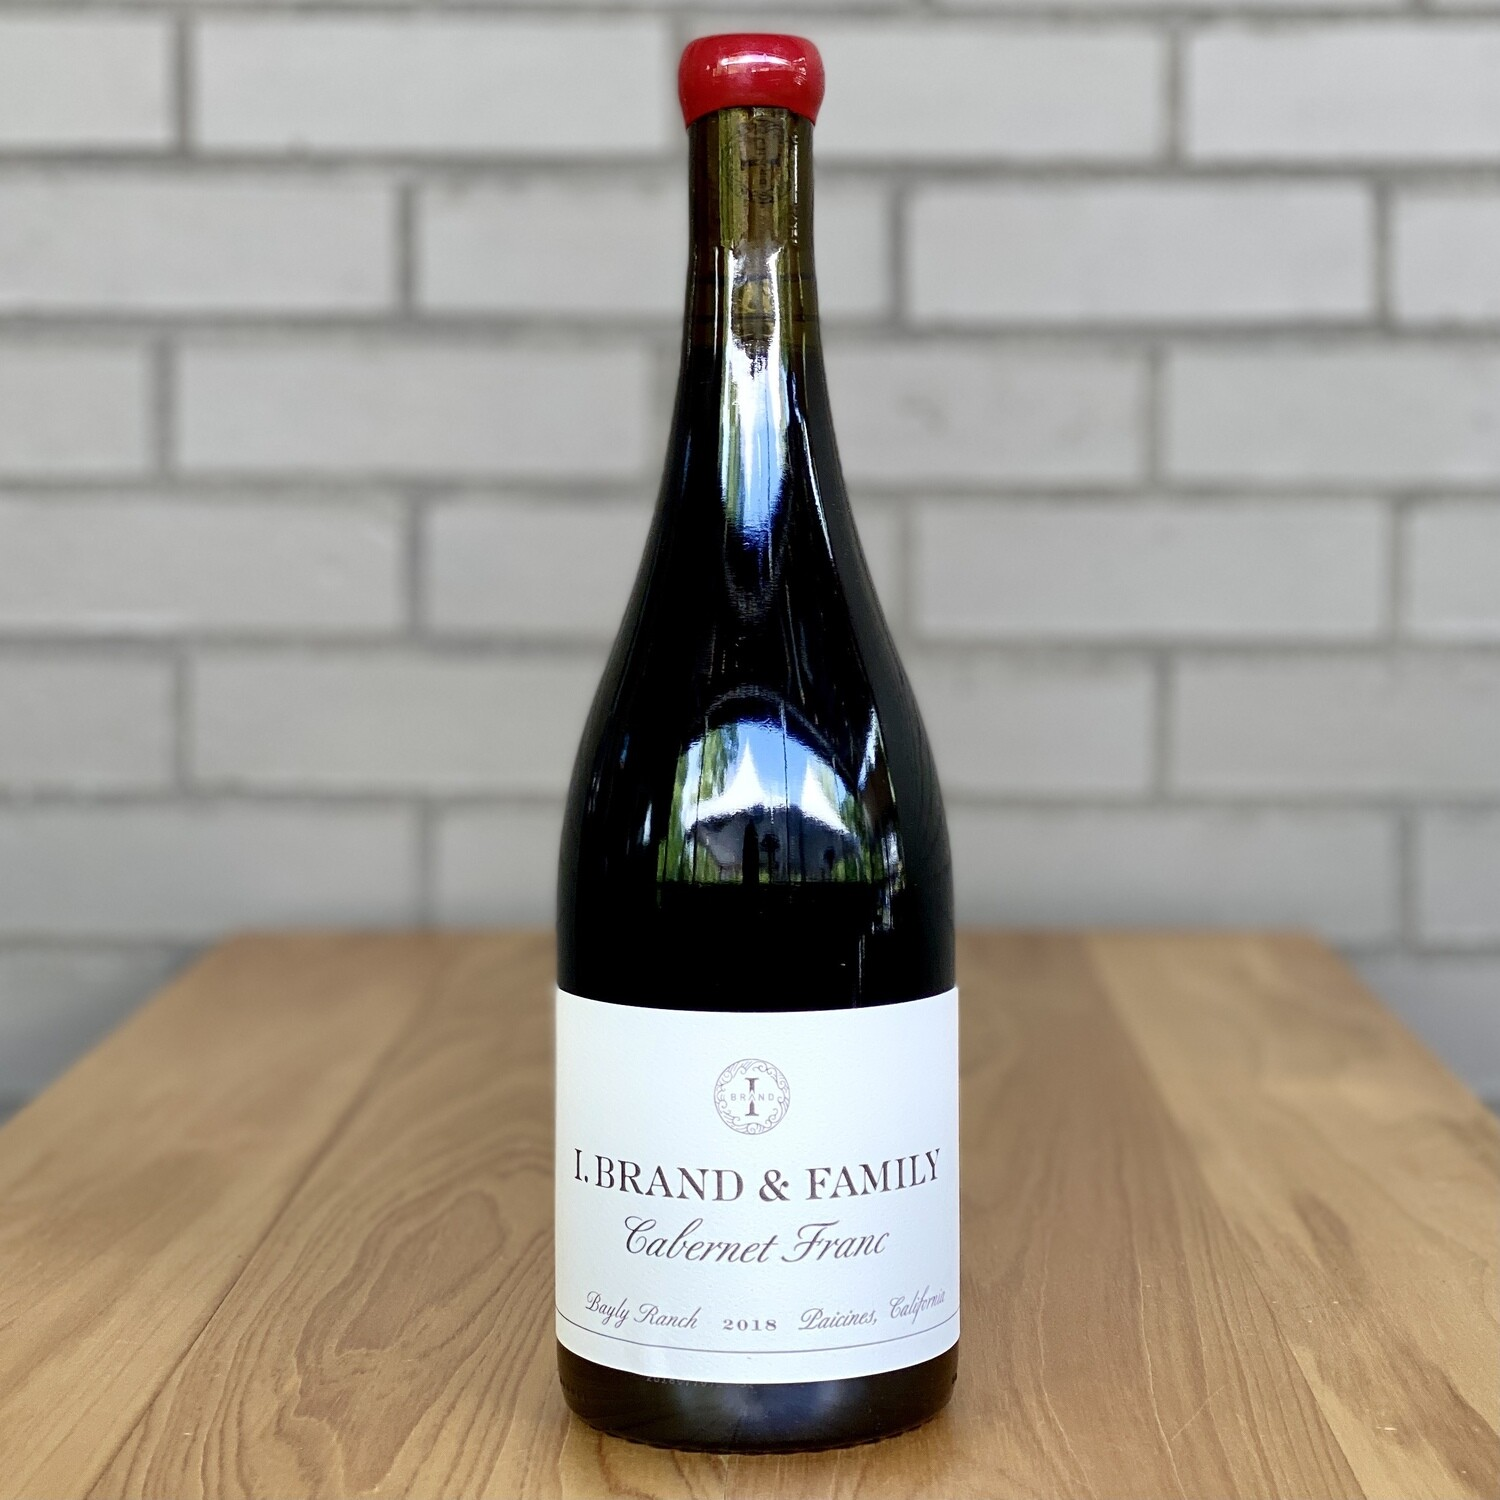 I. Brand & Family 'Bayly Ranch' Cabernet Franc (750ml)